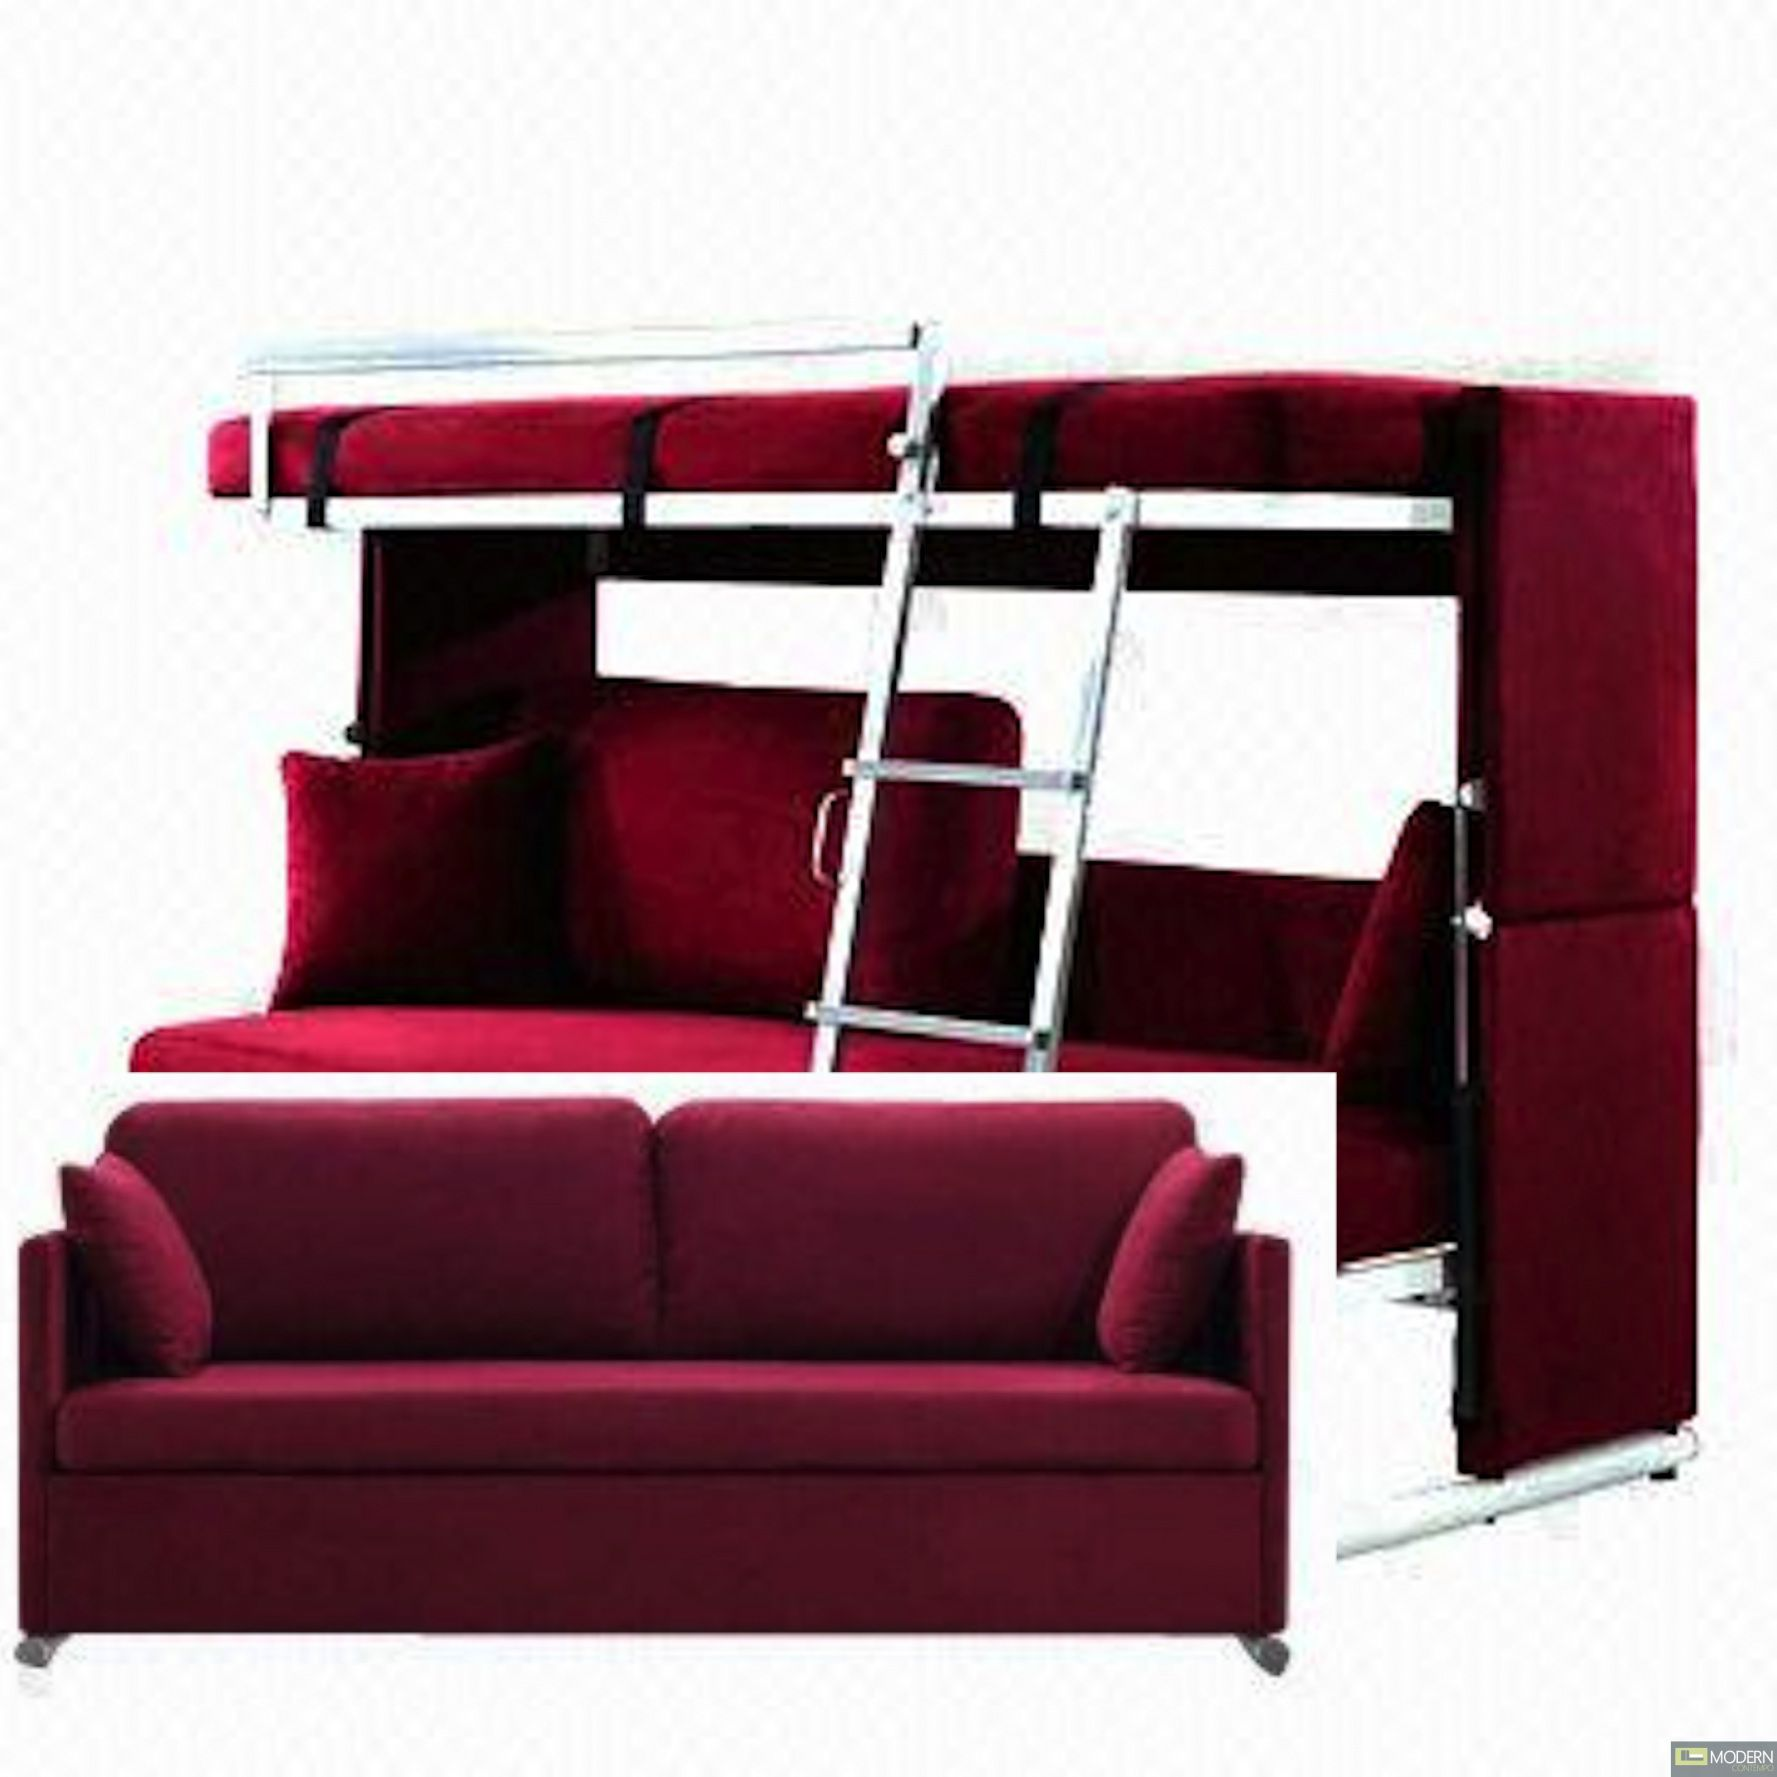 2019 Bunk Bed Couch Price Interior Paint Colors Bedroom Check More